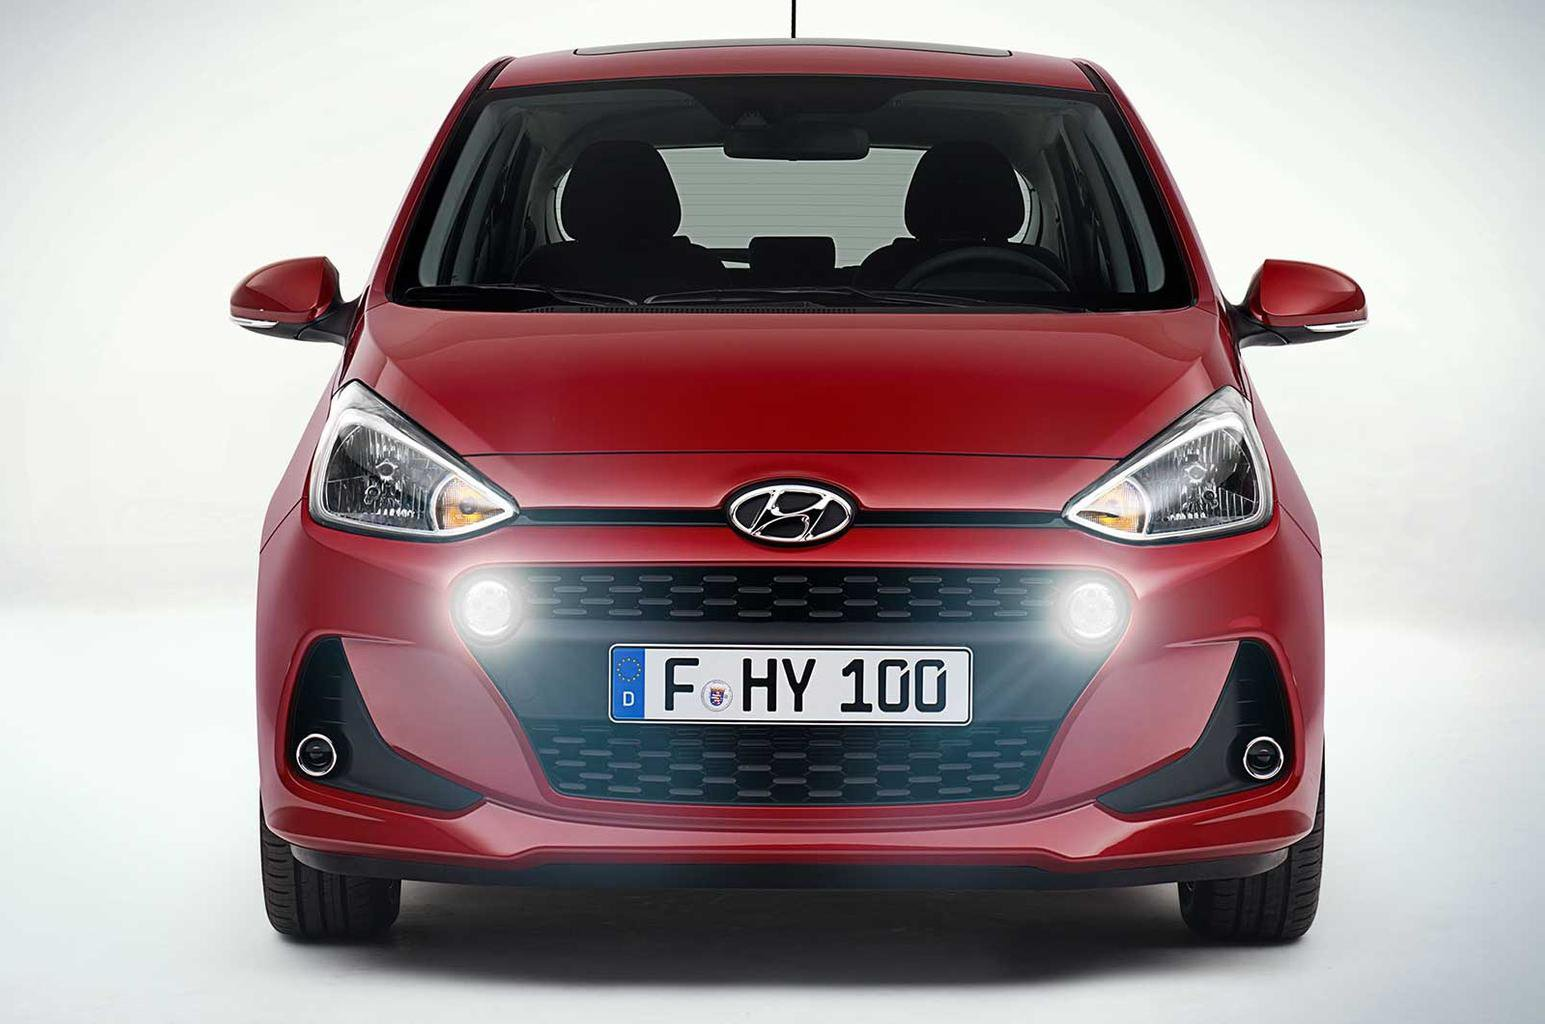 Facelifted Hyundai i10 to go on sale in January